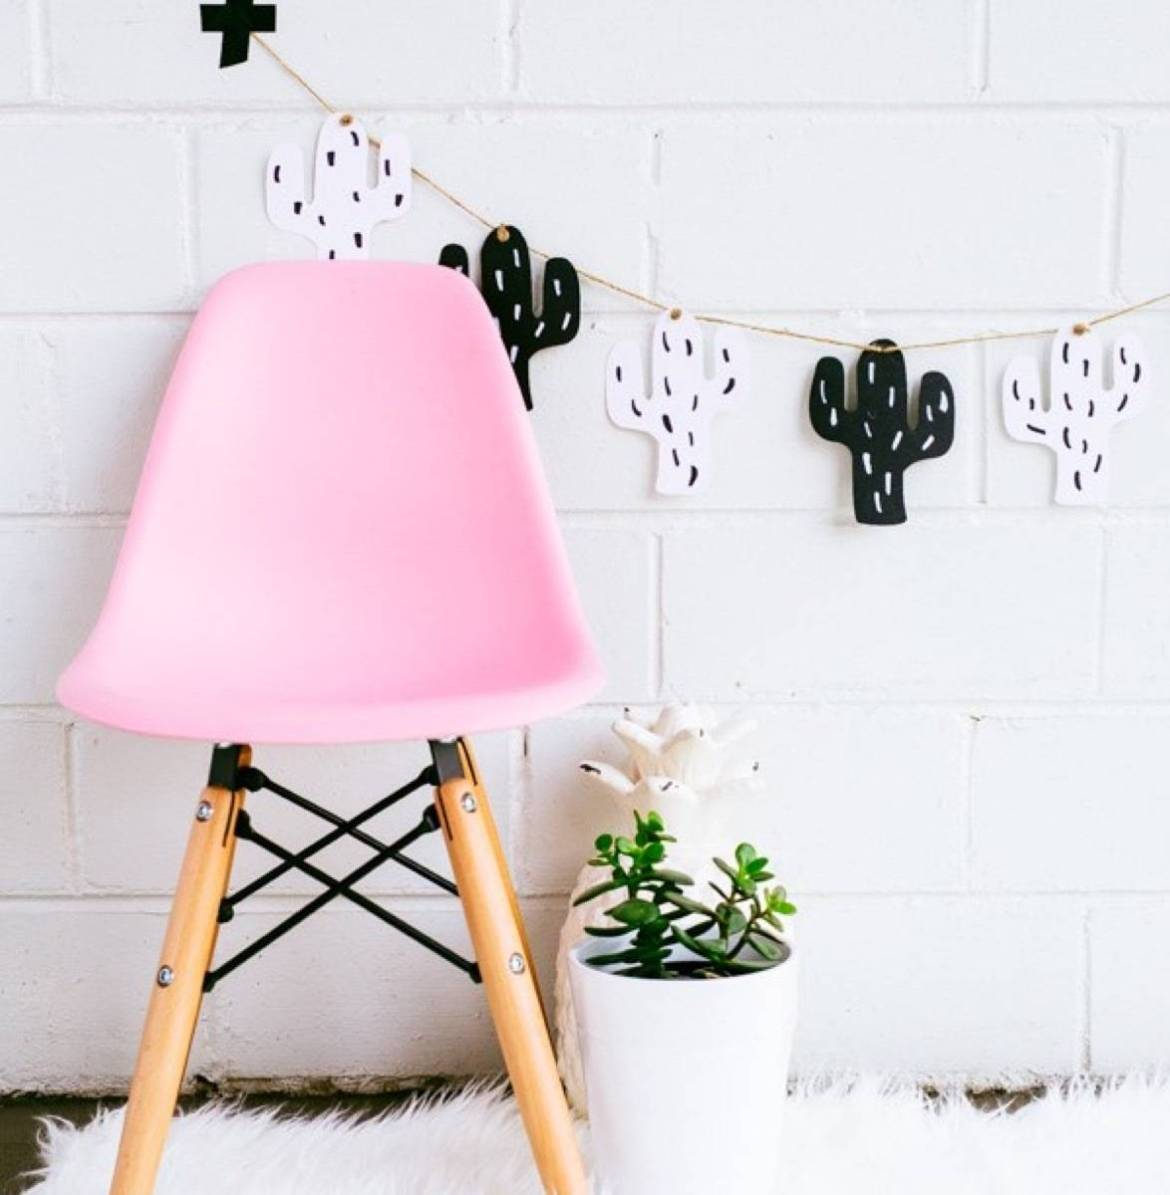 Kids garland idea from Hipster Mum | 75 DIY Kids Decor Ideas